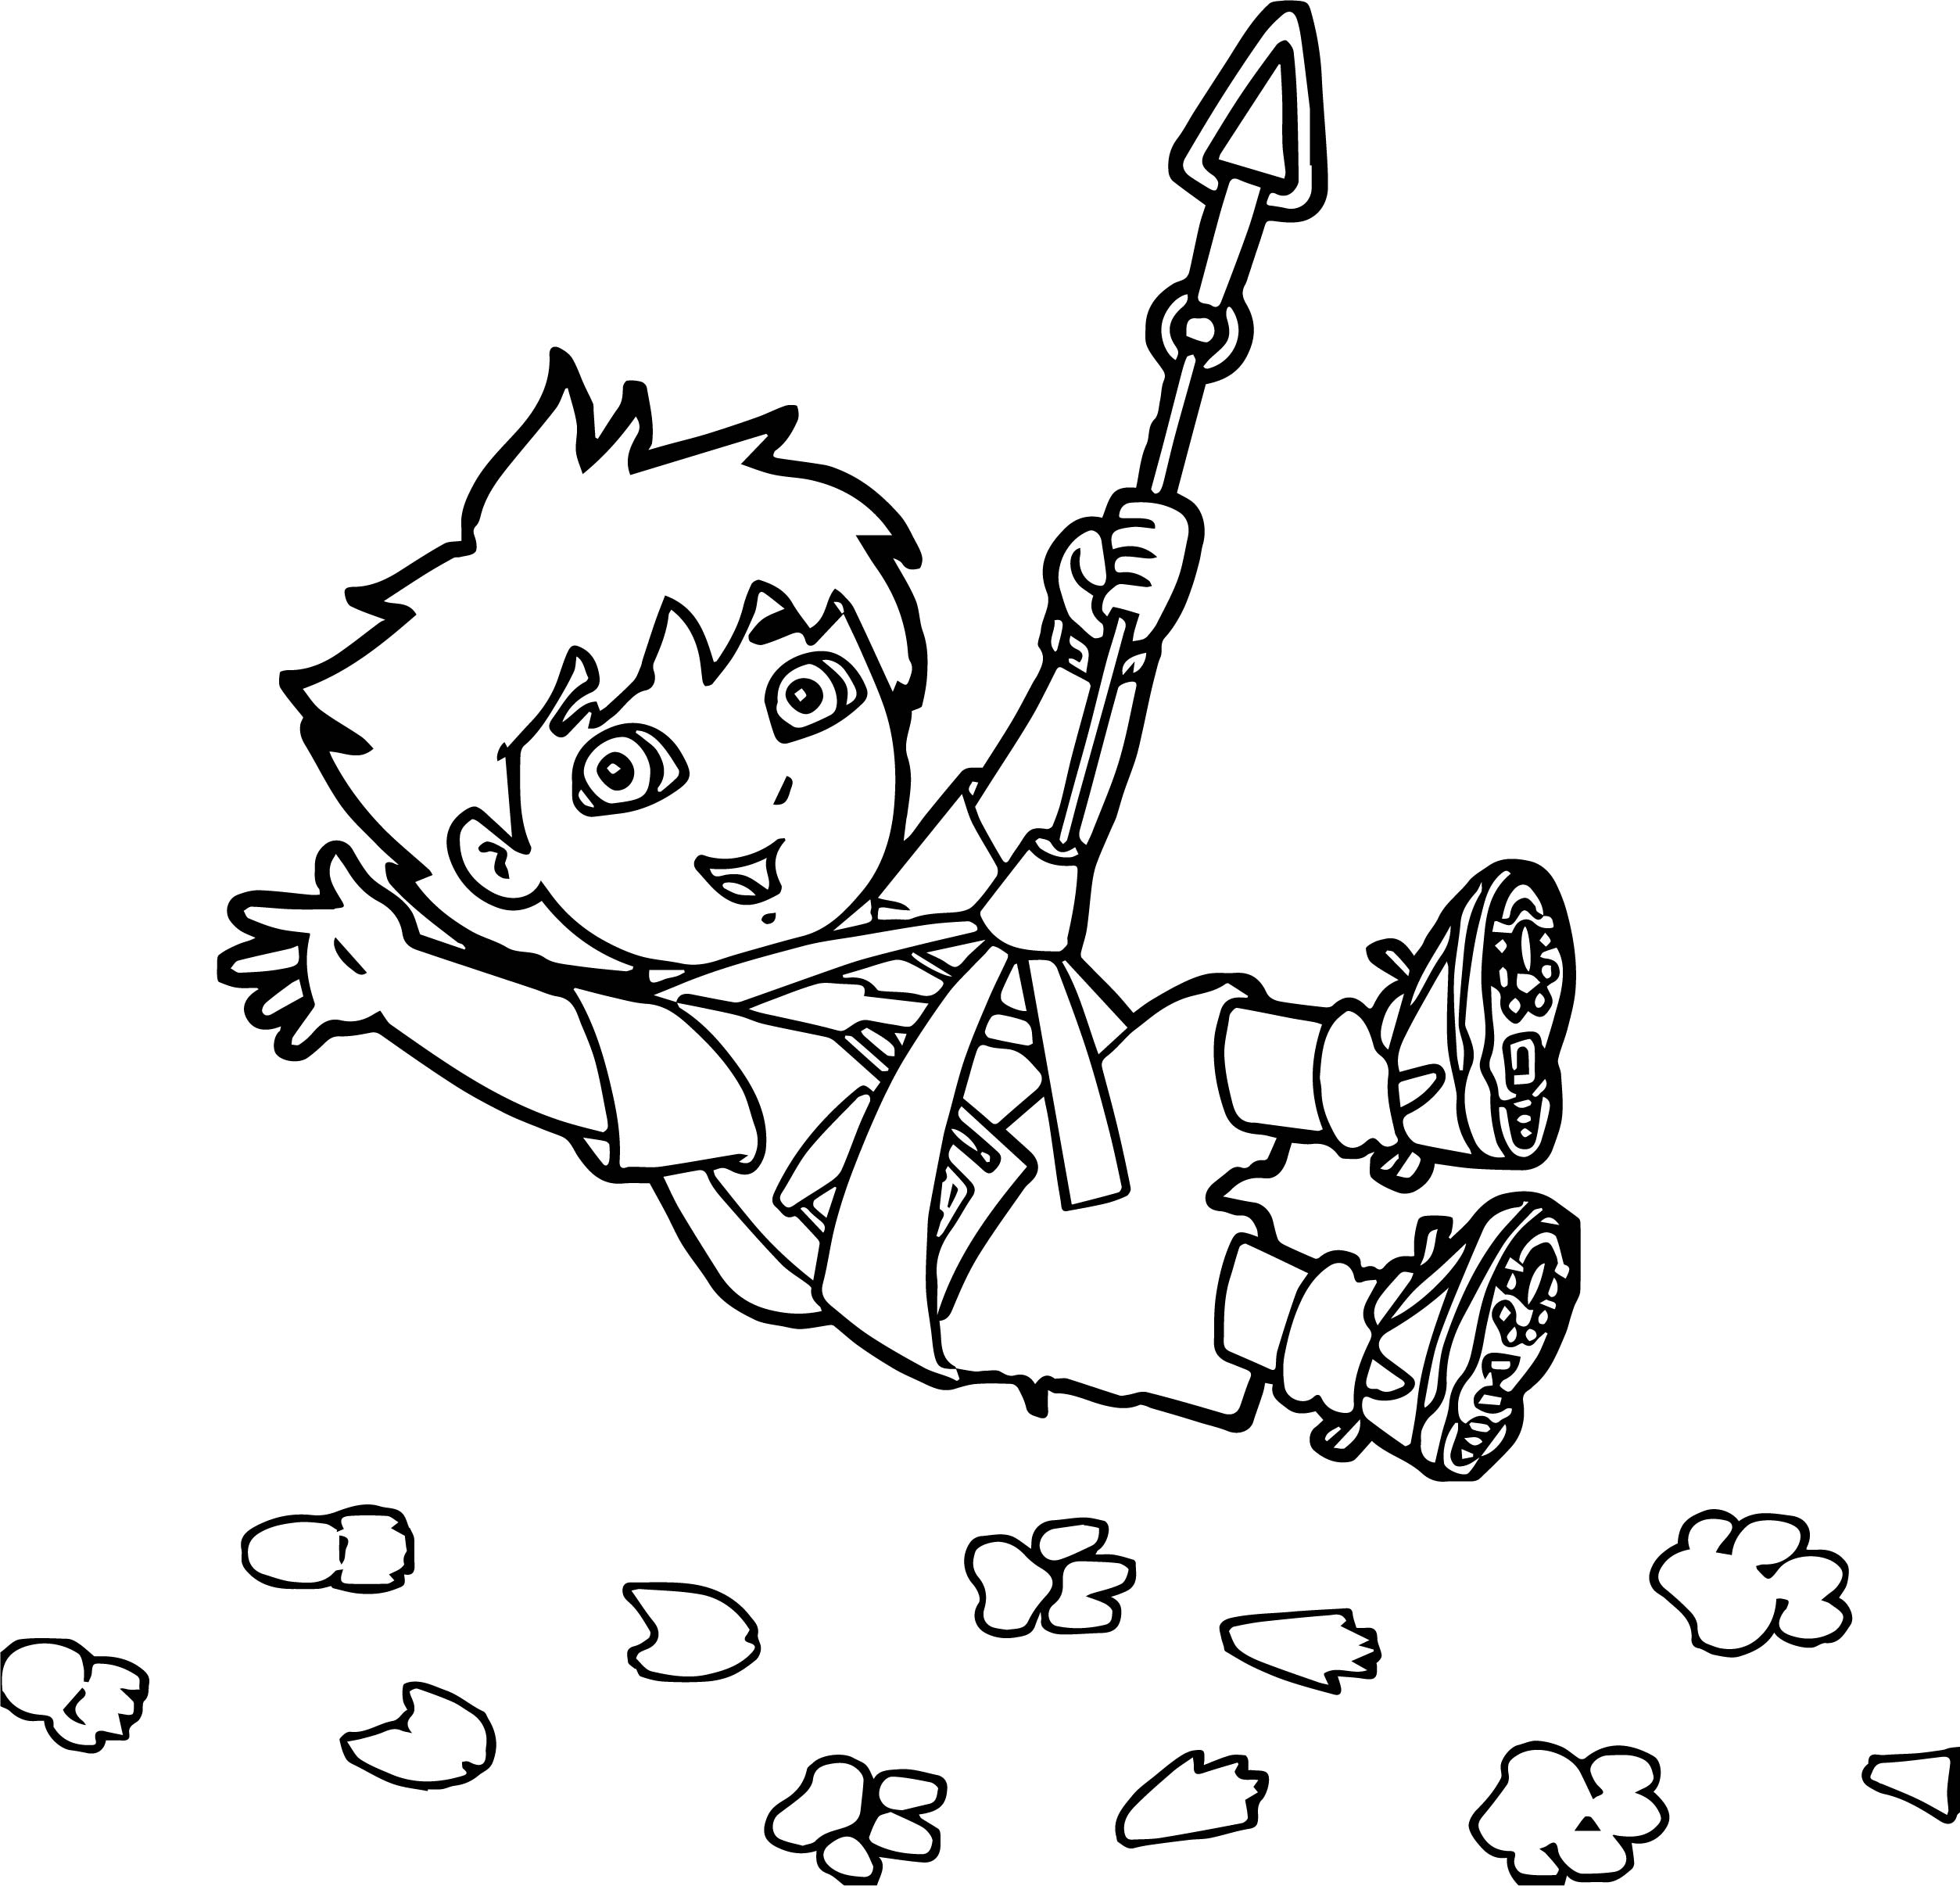 Go Diego Go Climb Mountain Coloring Page | Wecoloringpage.com